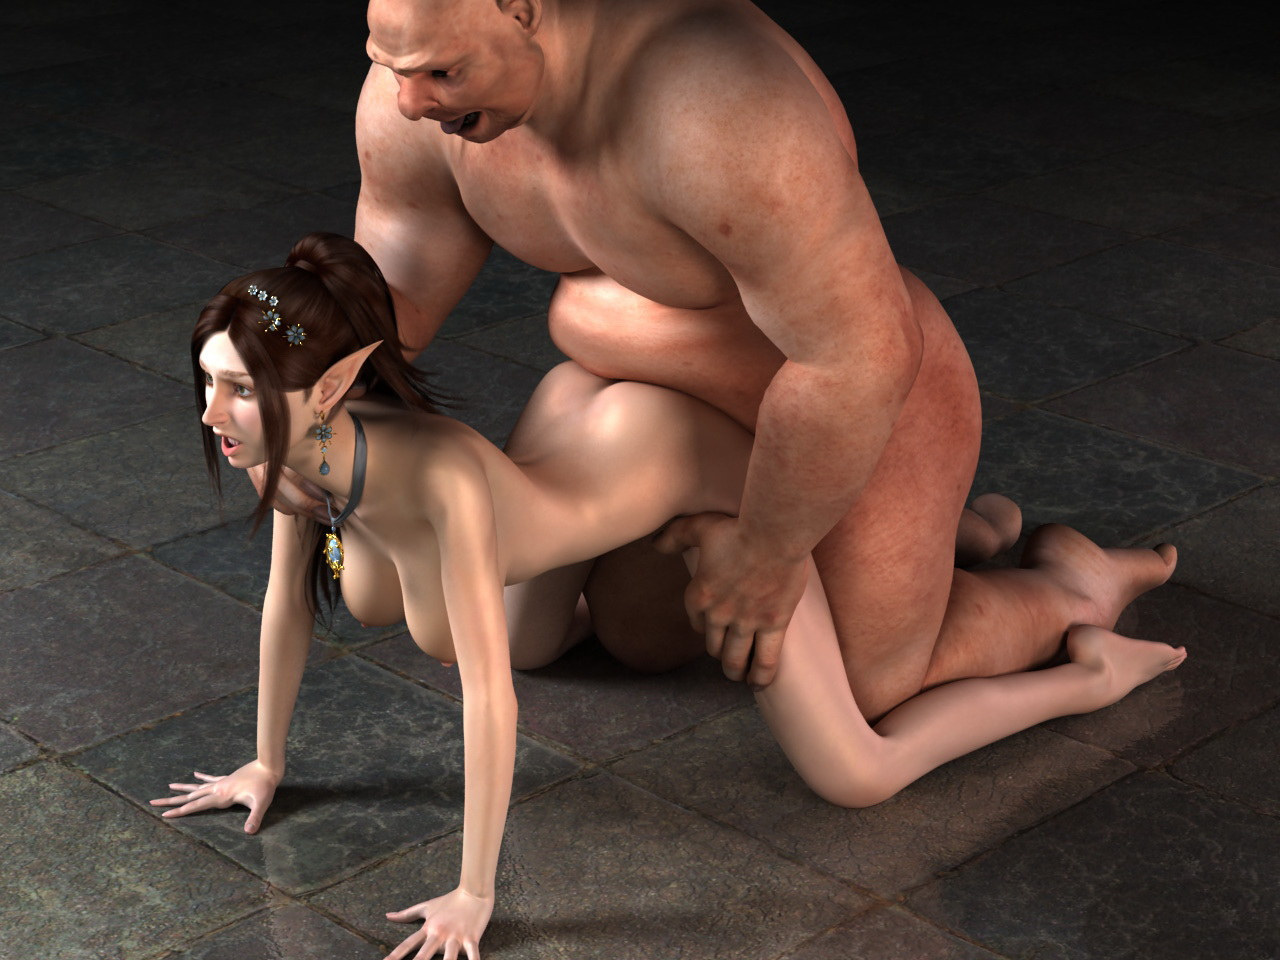 3d monsters fuck 3gp sexy movies